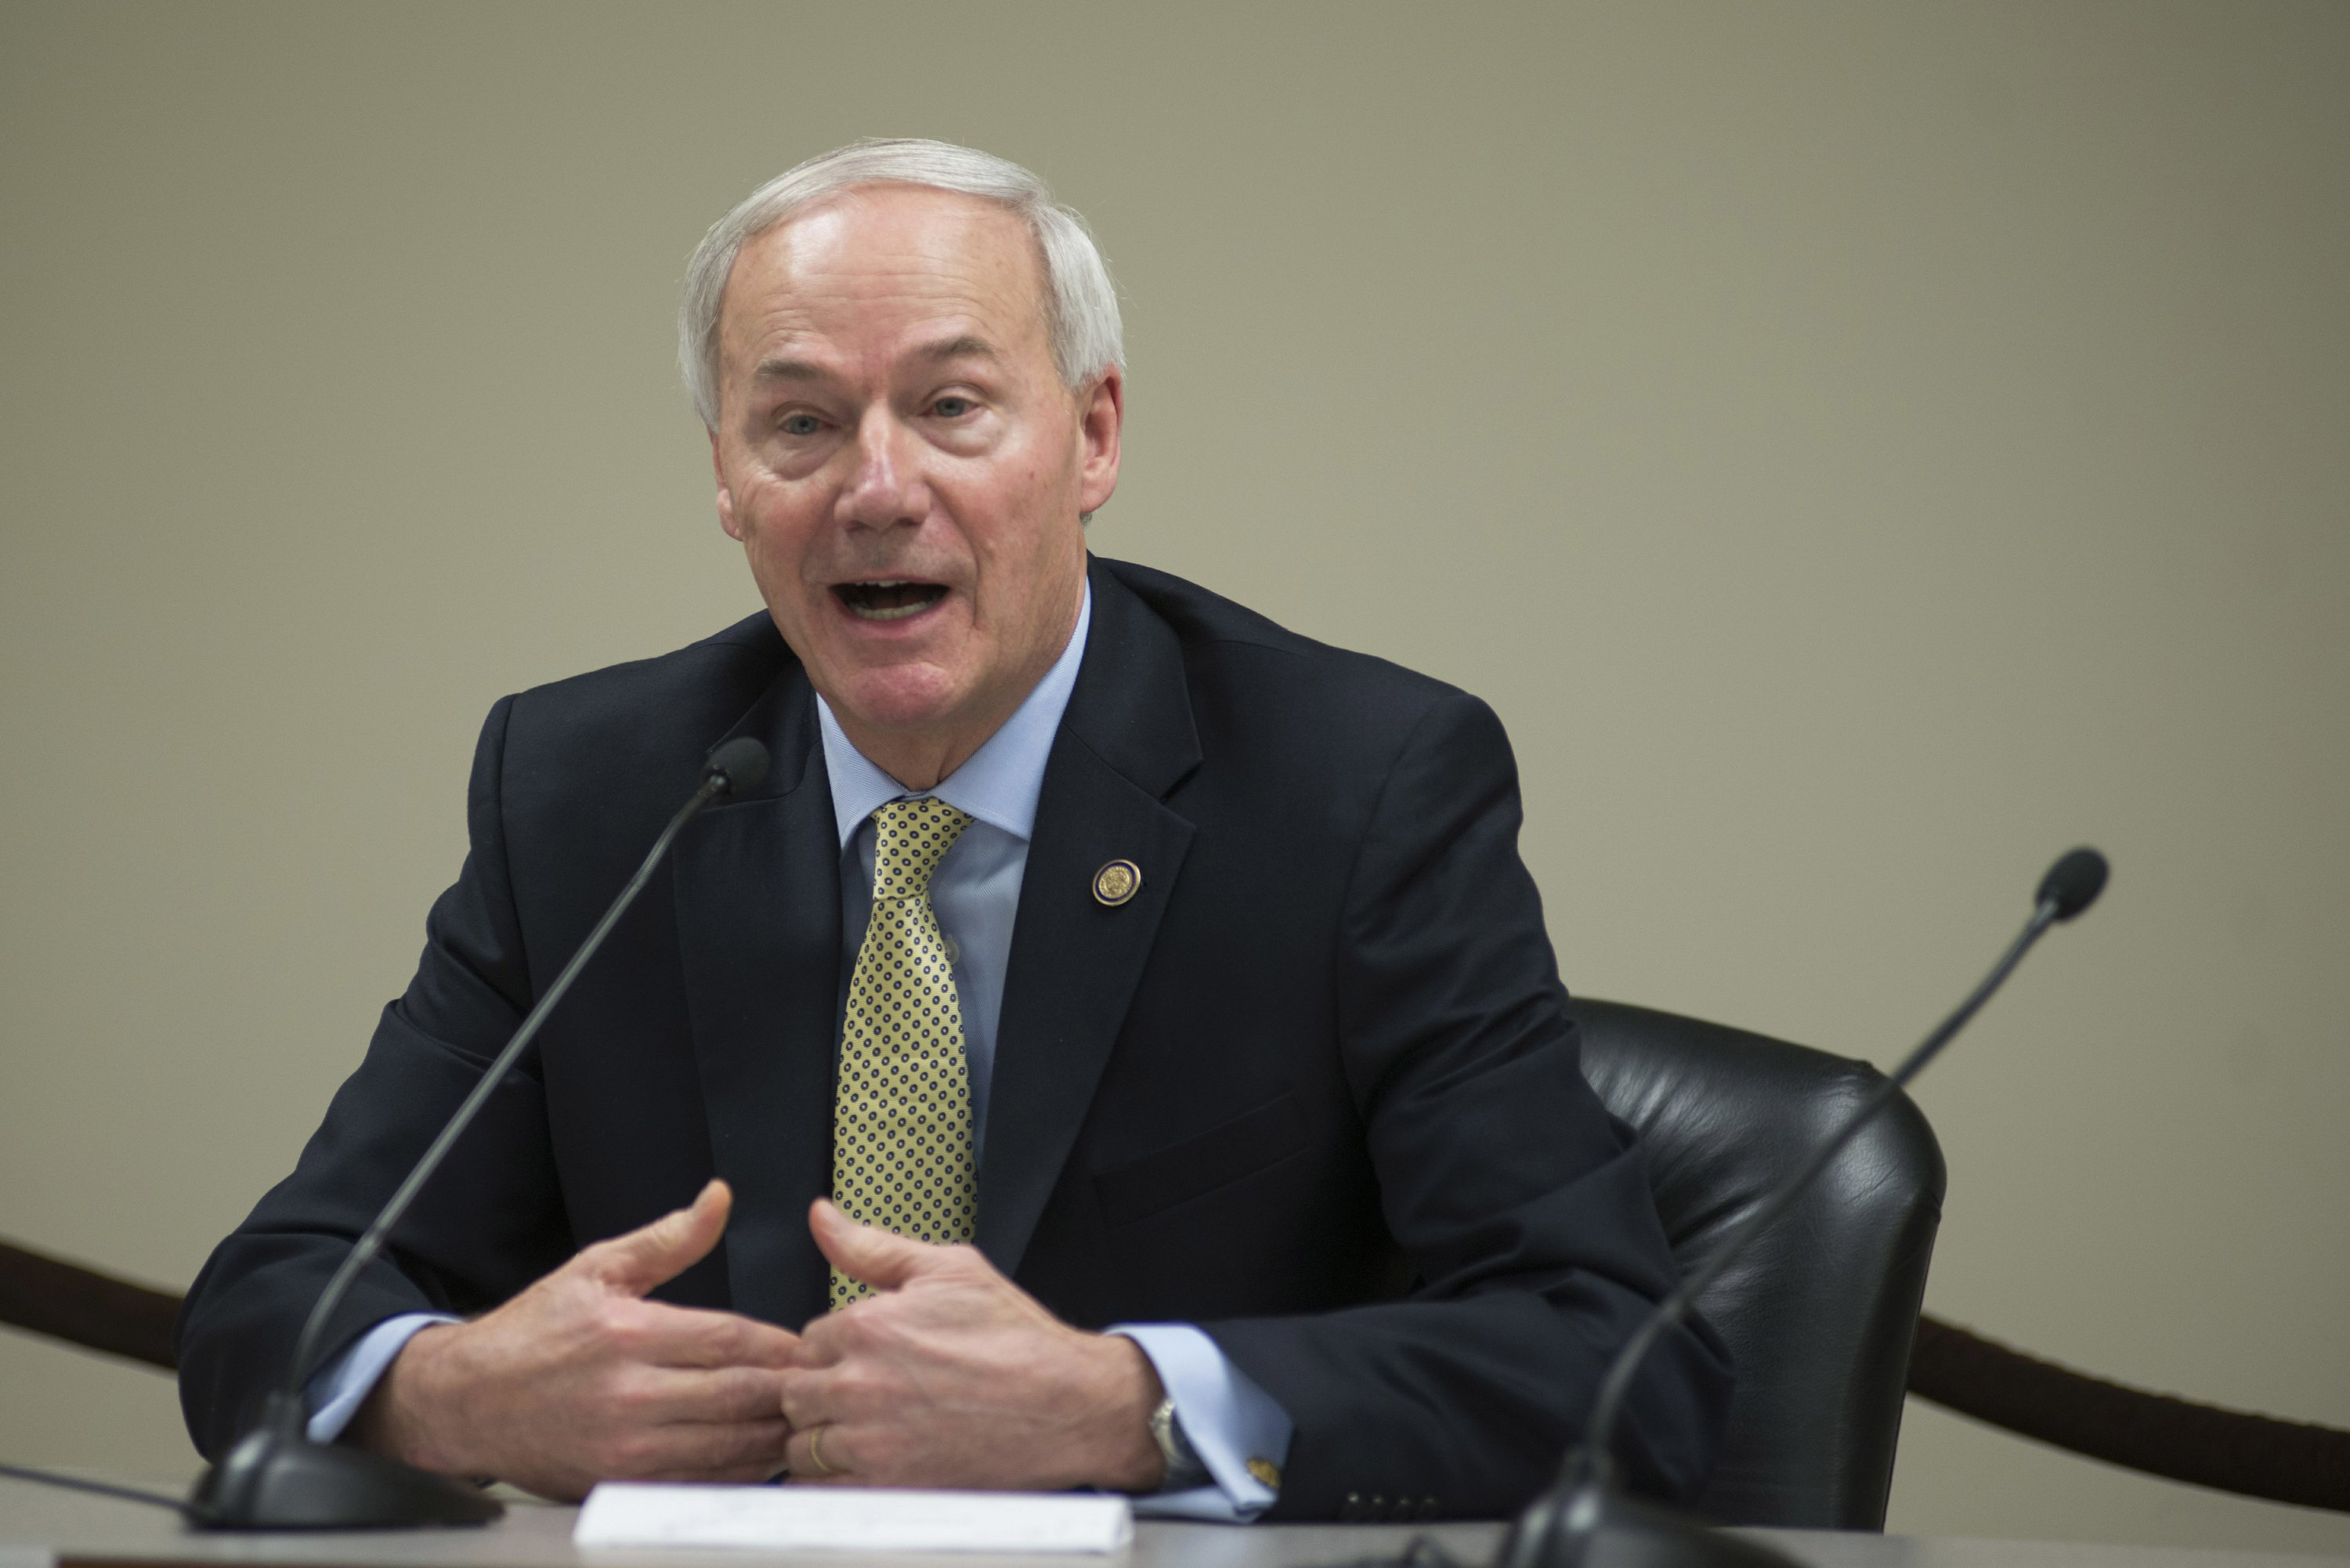 The Latest: Arkansas governor 'disappointed' in delay